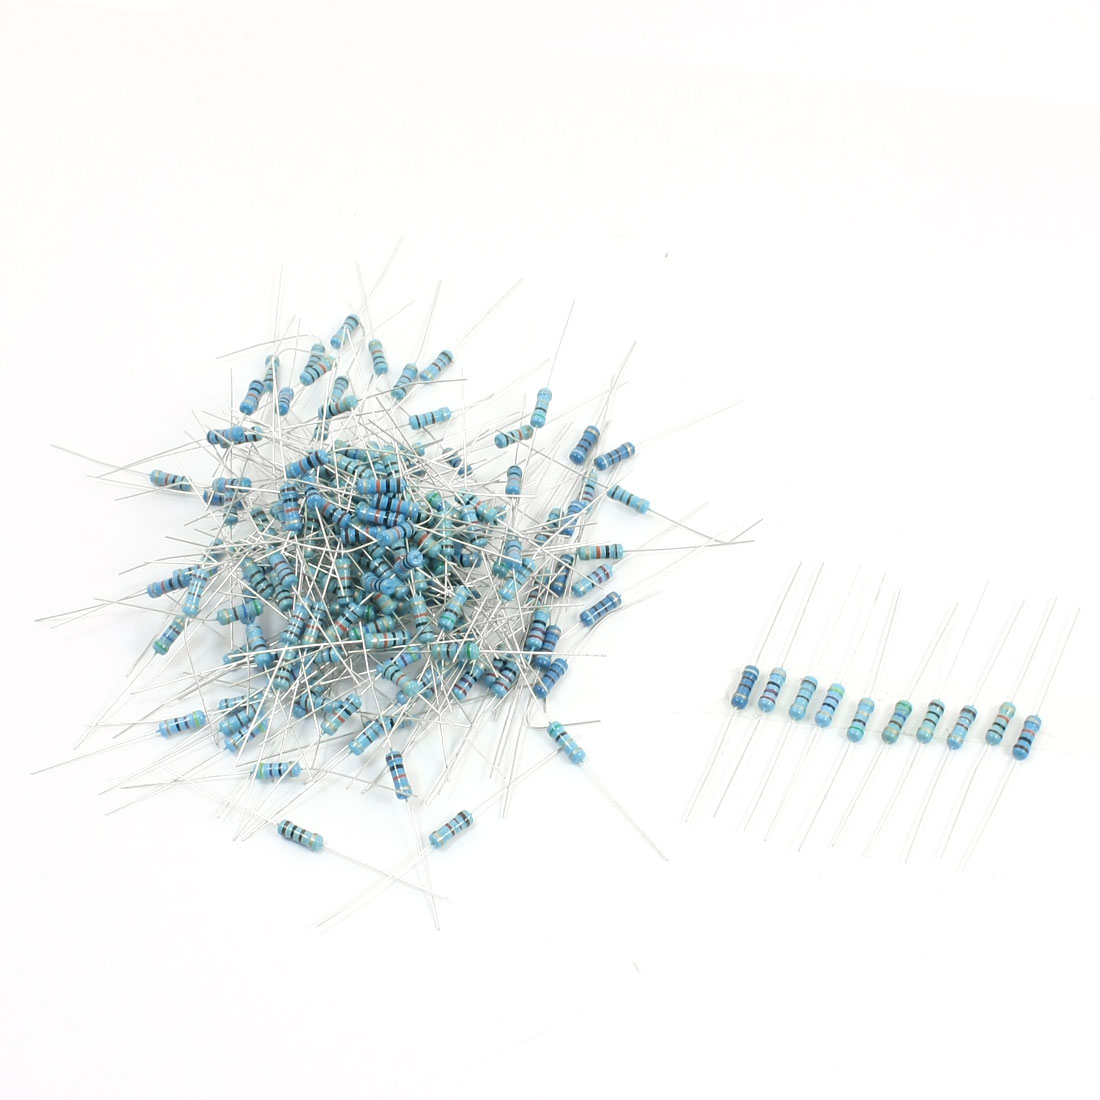 200pcs 10 Values 5.1-10K Ohm 5% Tolerance 1/2W Carbon Film Resistors